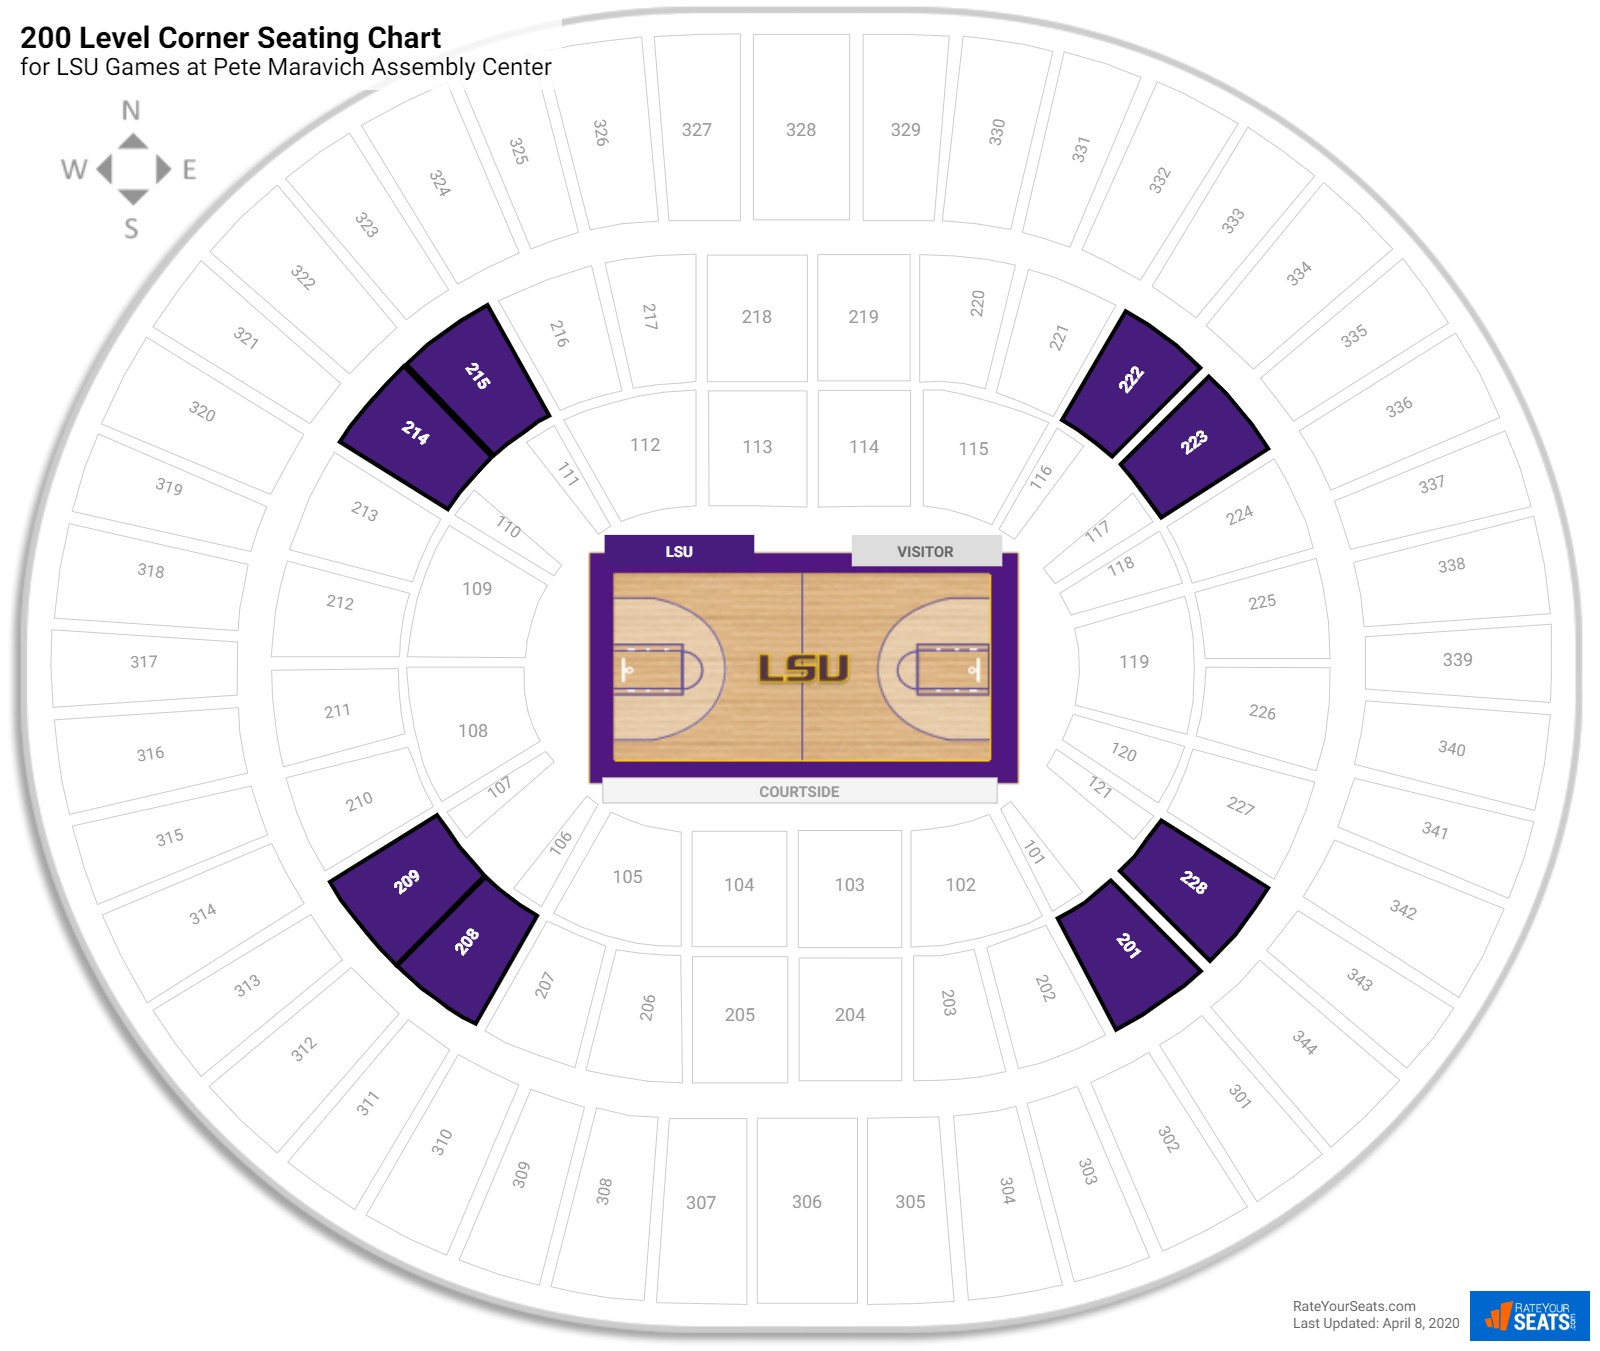 Pete Maravich Assembly Center 200 Level Corner seating chart